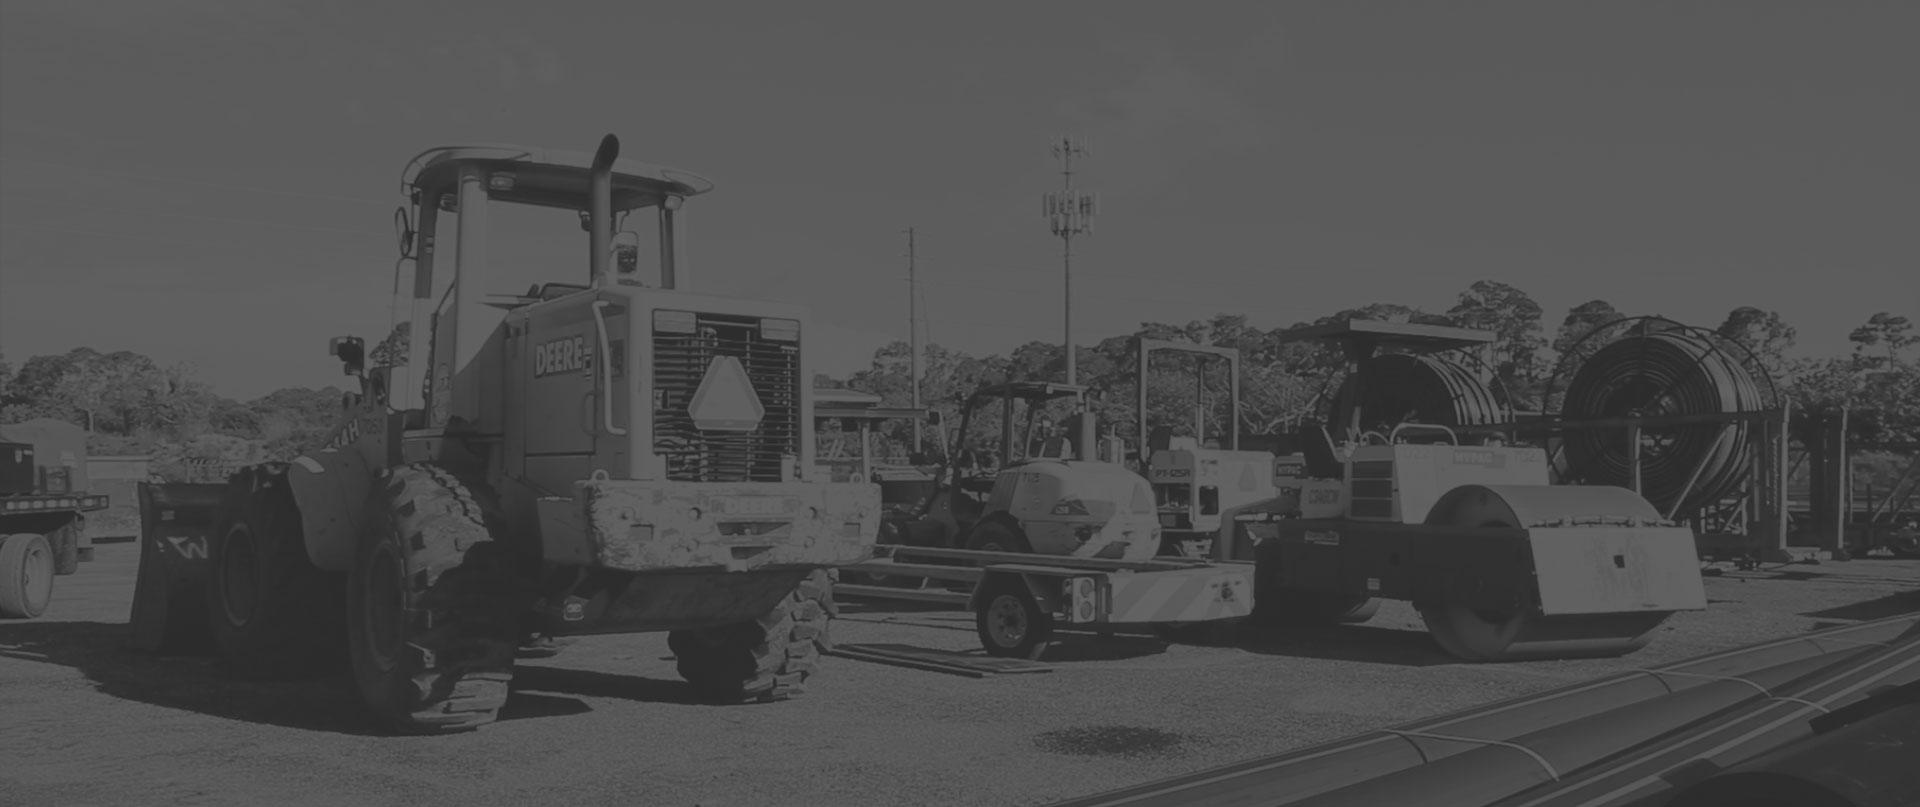 A black and white image of directional drilling equipment including a steamroller.